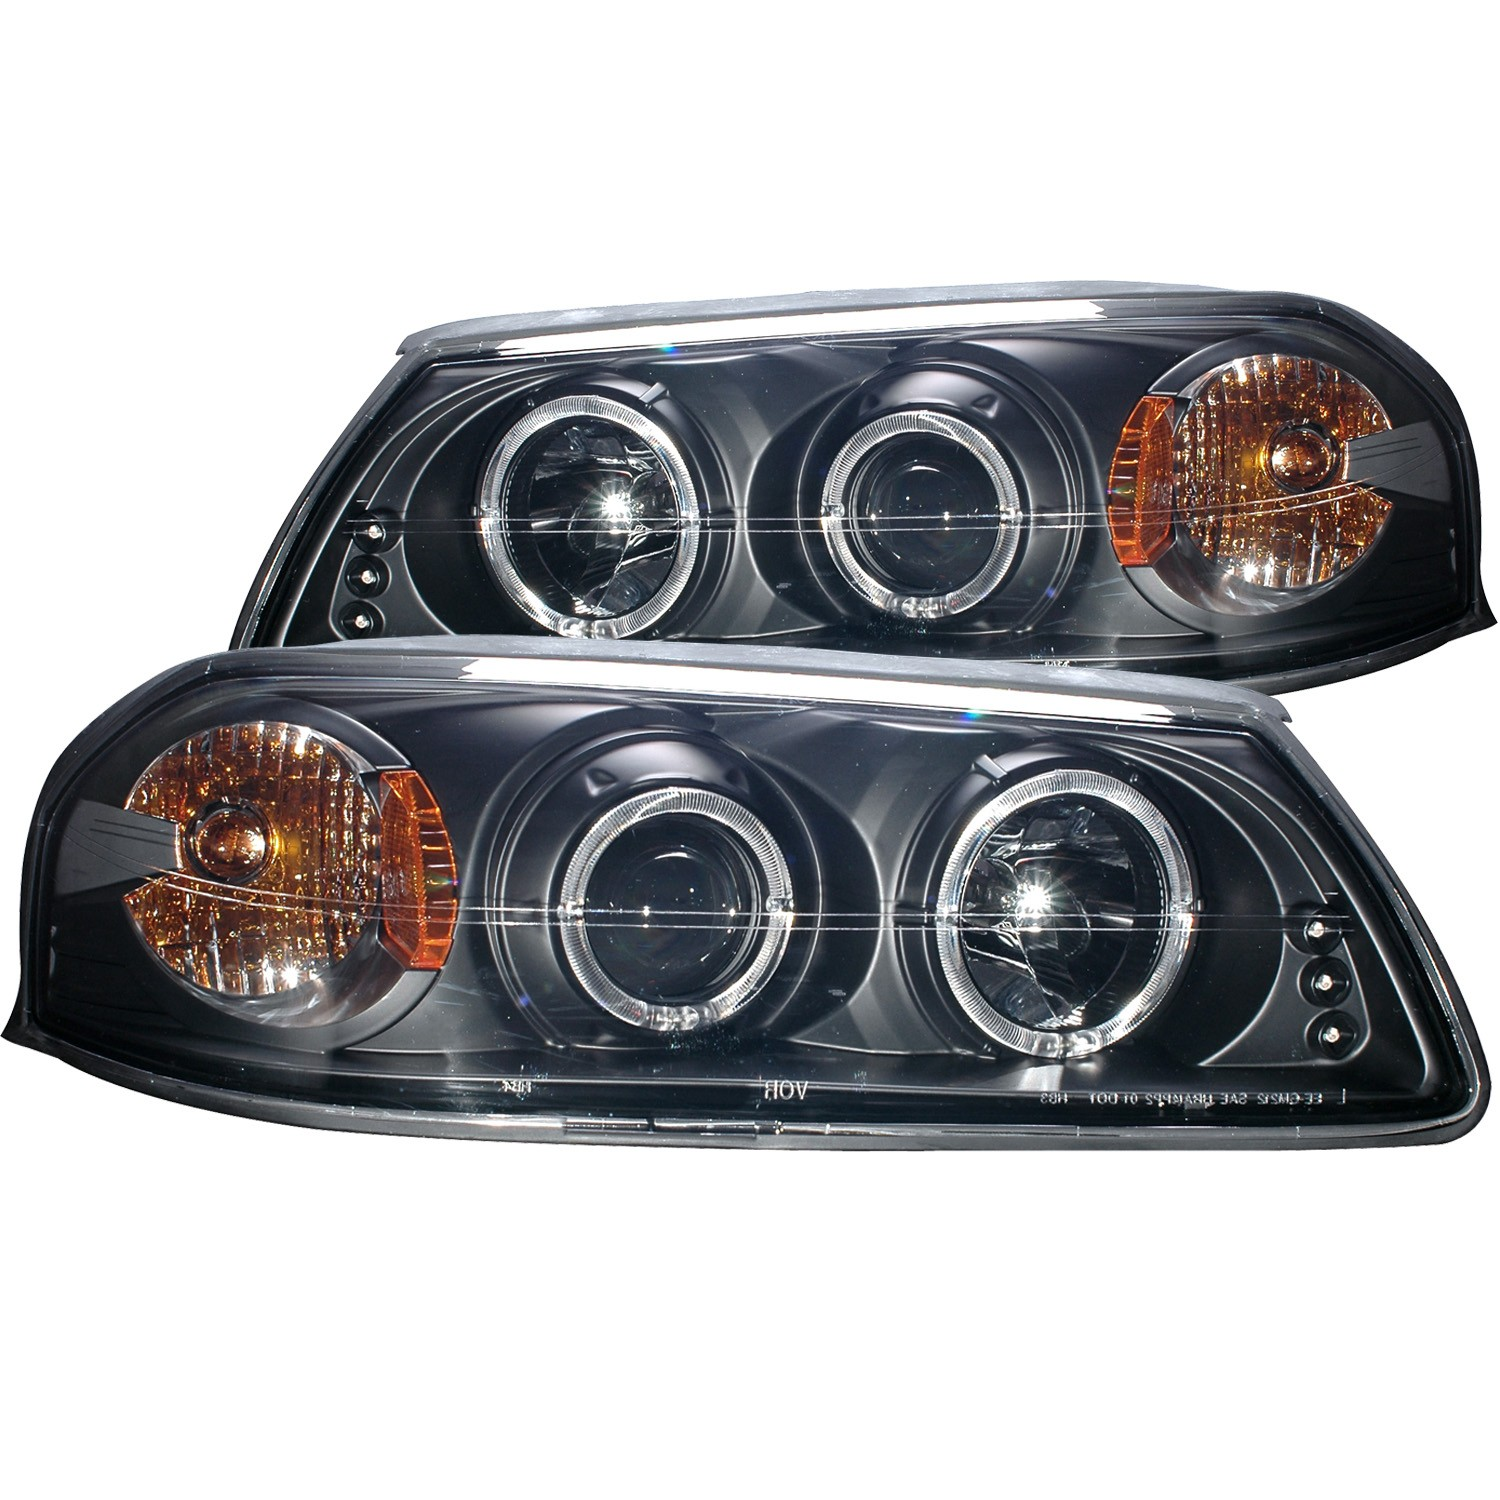 Details About Fits 2000 03 Chevrolet Impala Headlight Front Left Driver Right Penger Side